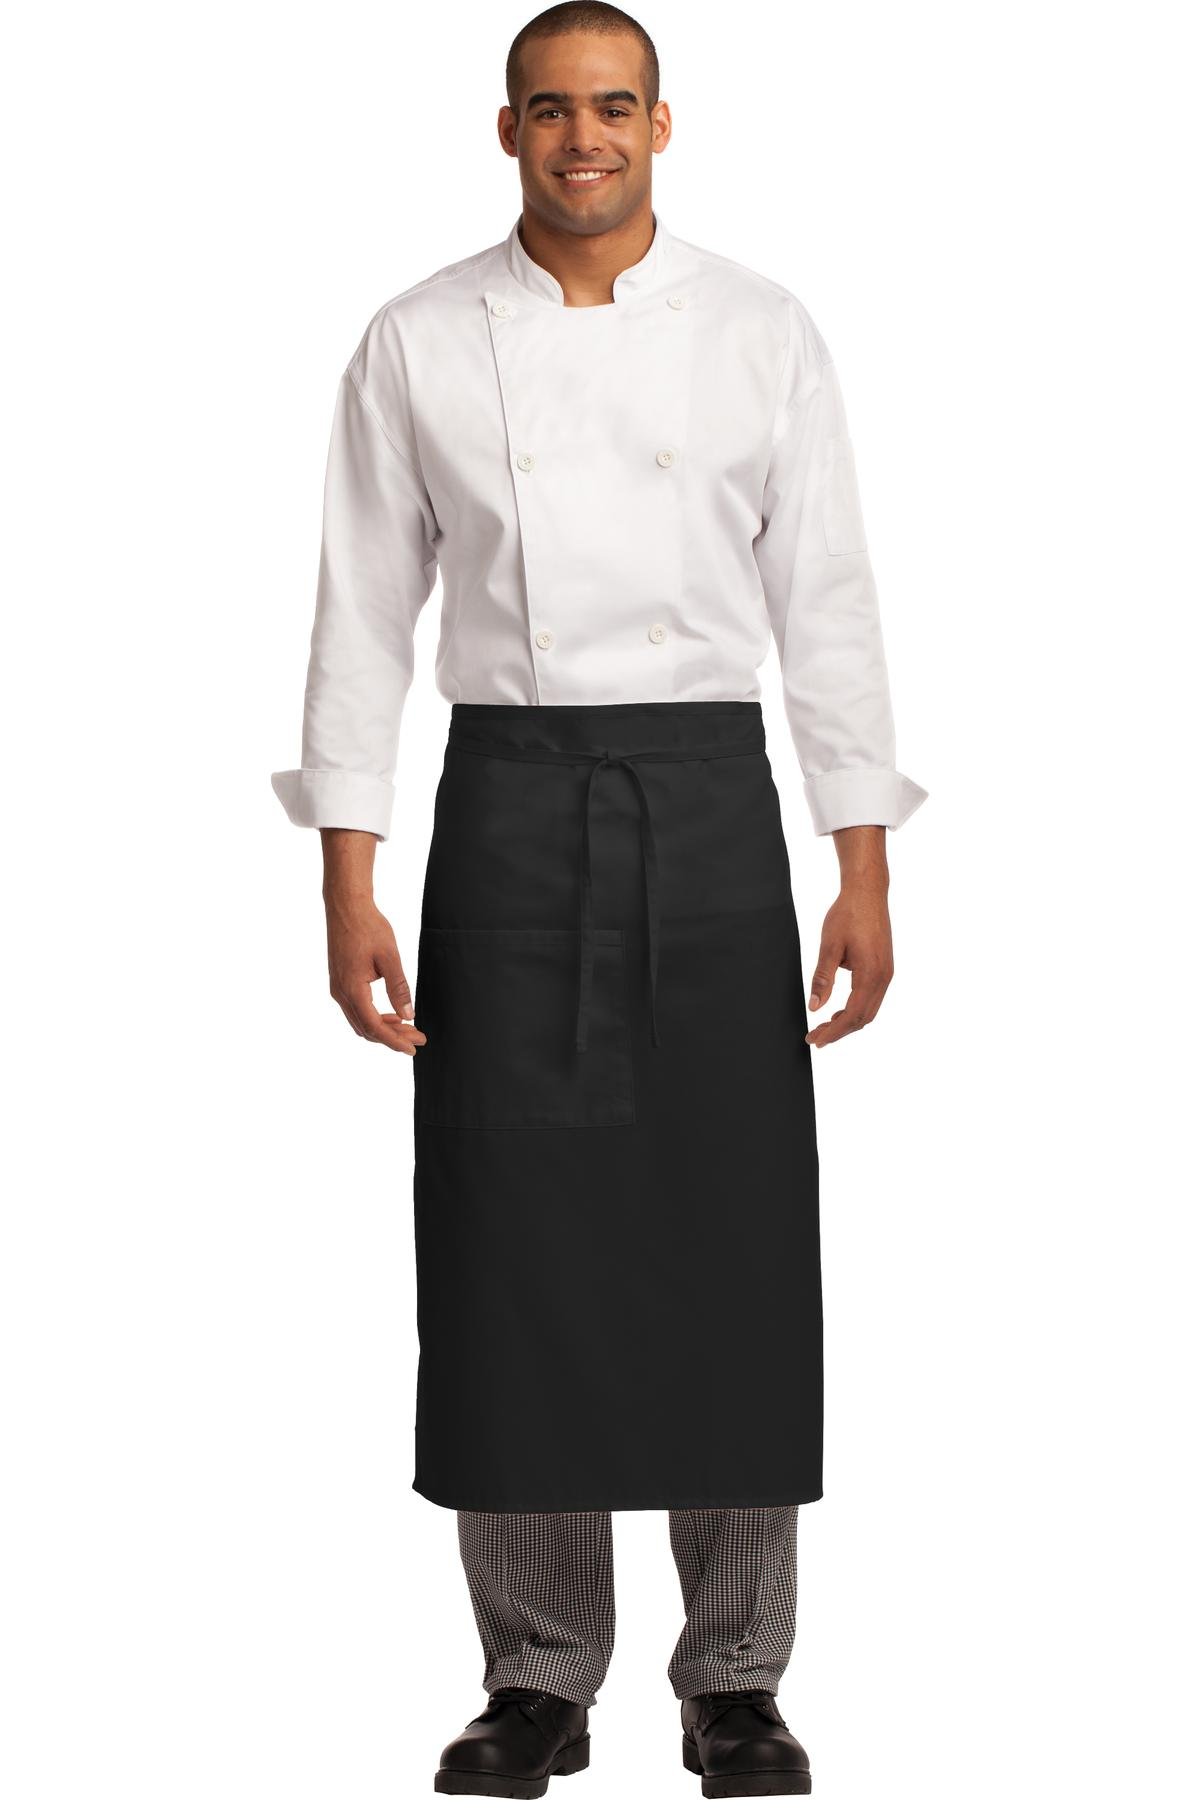 Port Authority  A701 - Easy Care Full Bistro Apron with Stain Release